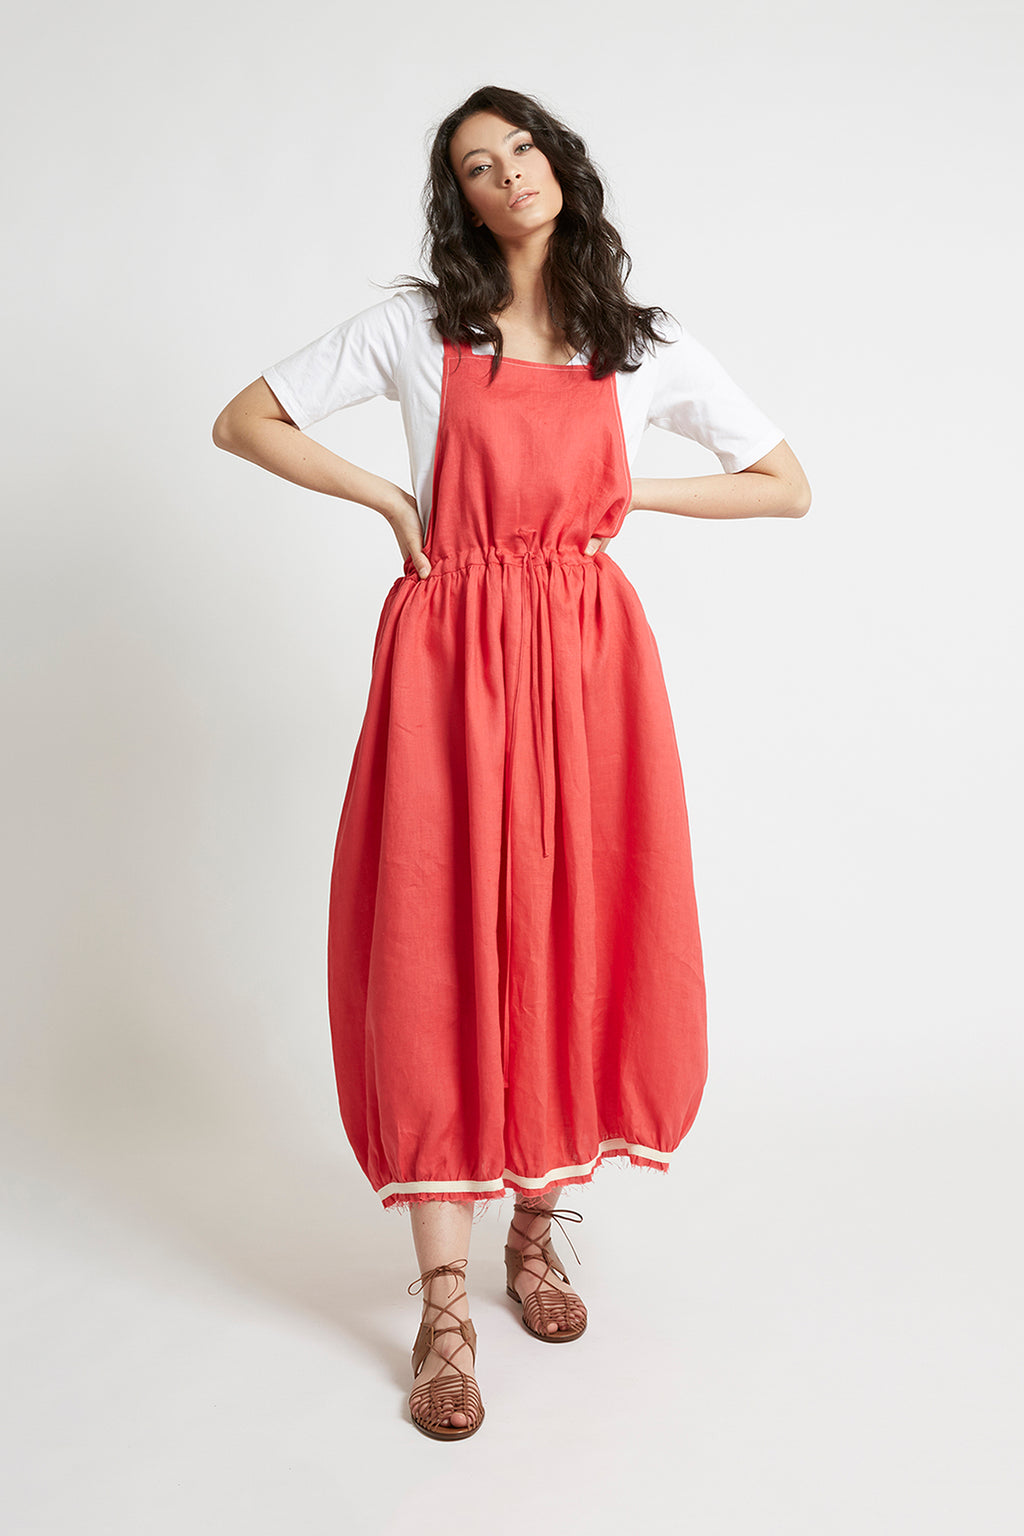 Red Linen Drawstring Pinafore Dresses The Fashion Advocate ethical Australian fashion designer boutique Melbourne sustainable clothes